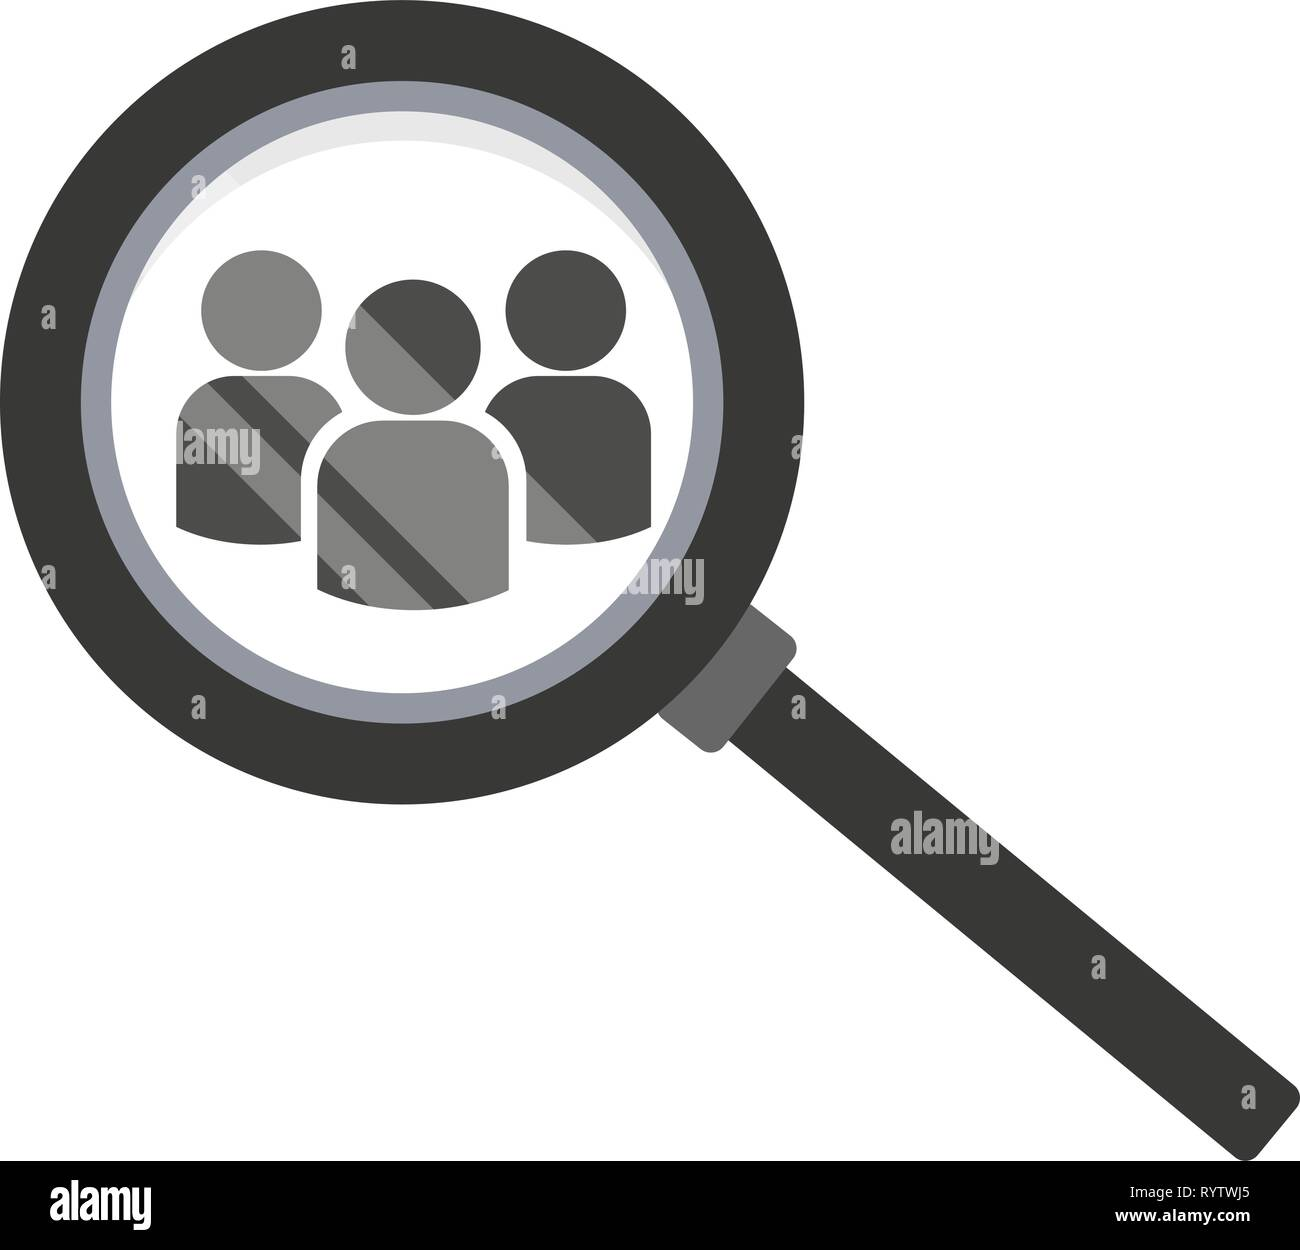 Team search icon. Look at people under a magnifying glass. Vector illustration on white background. - Stock Image